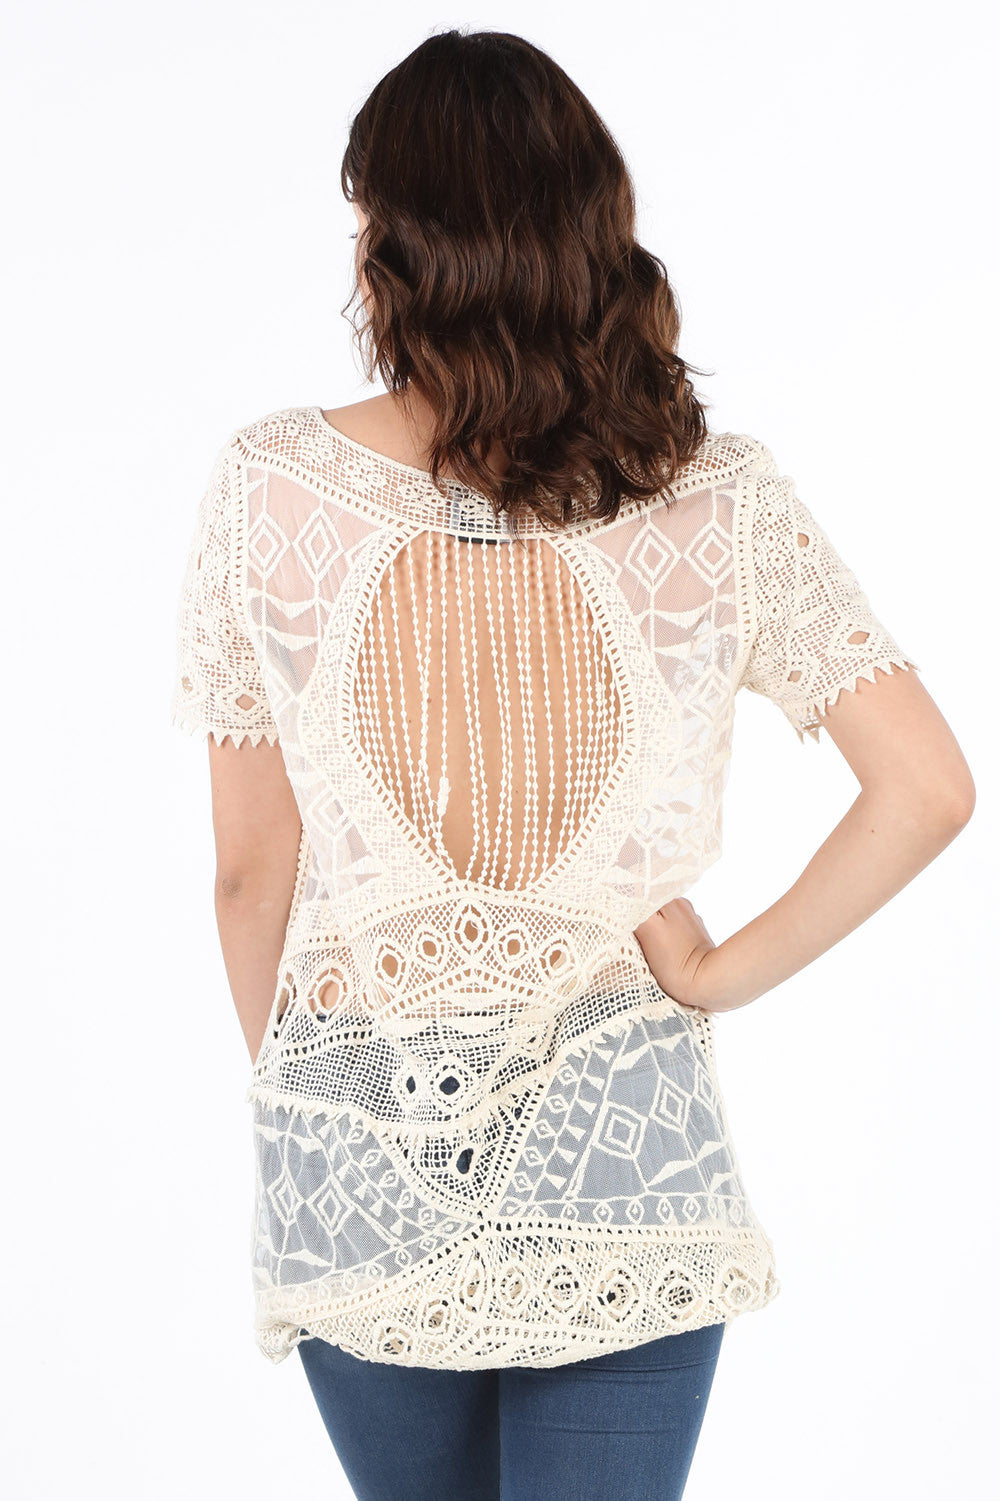 LIV879 Natural Crochet Tunic